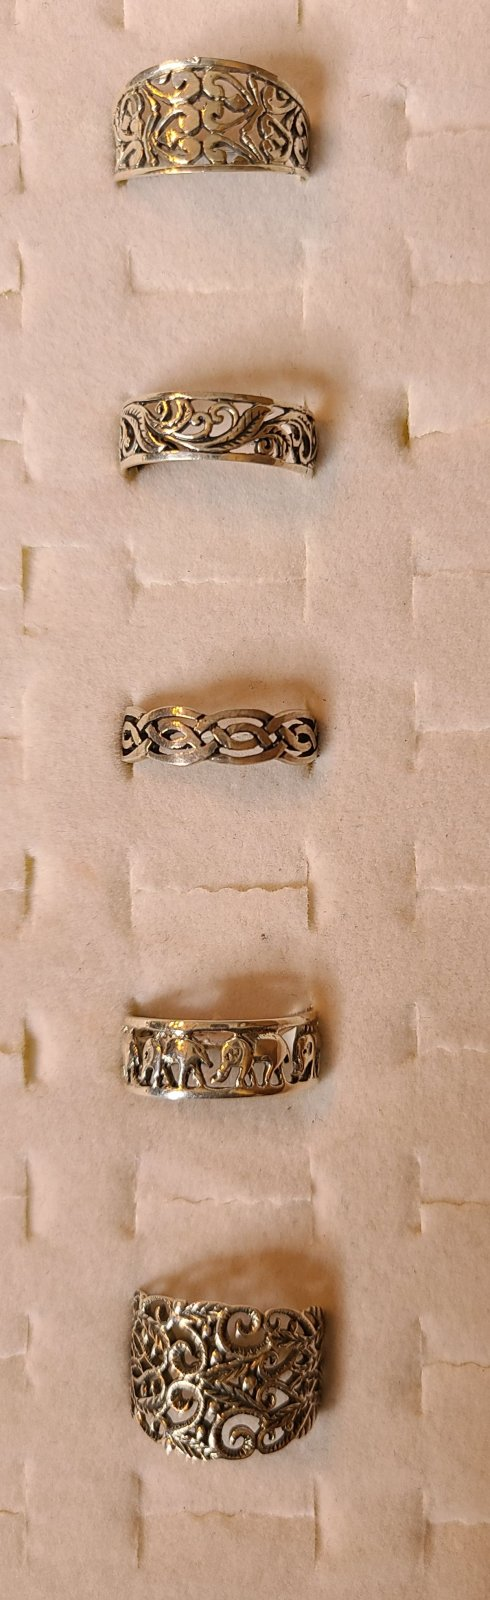 Sterling Silver Size 8 Thumb Ring Selections - copy